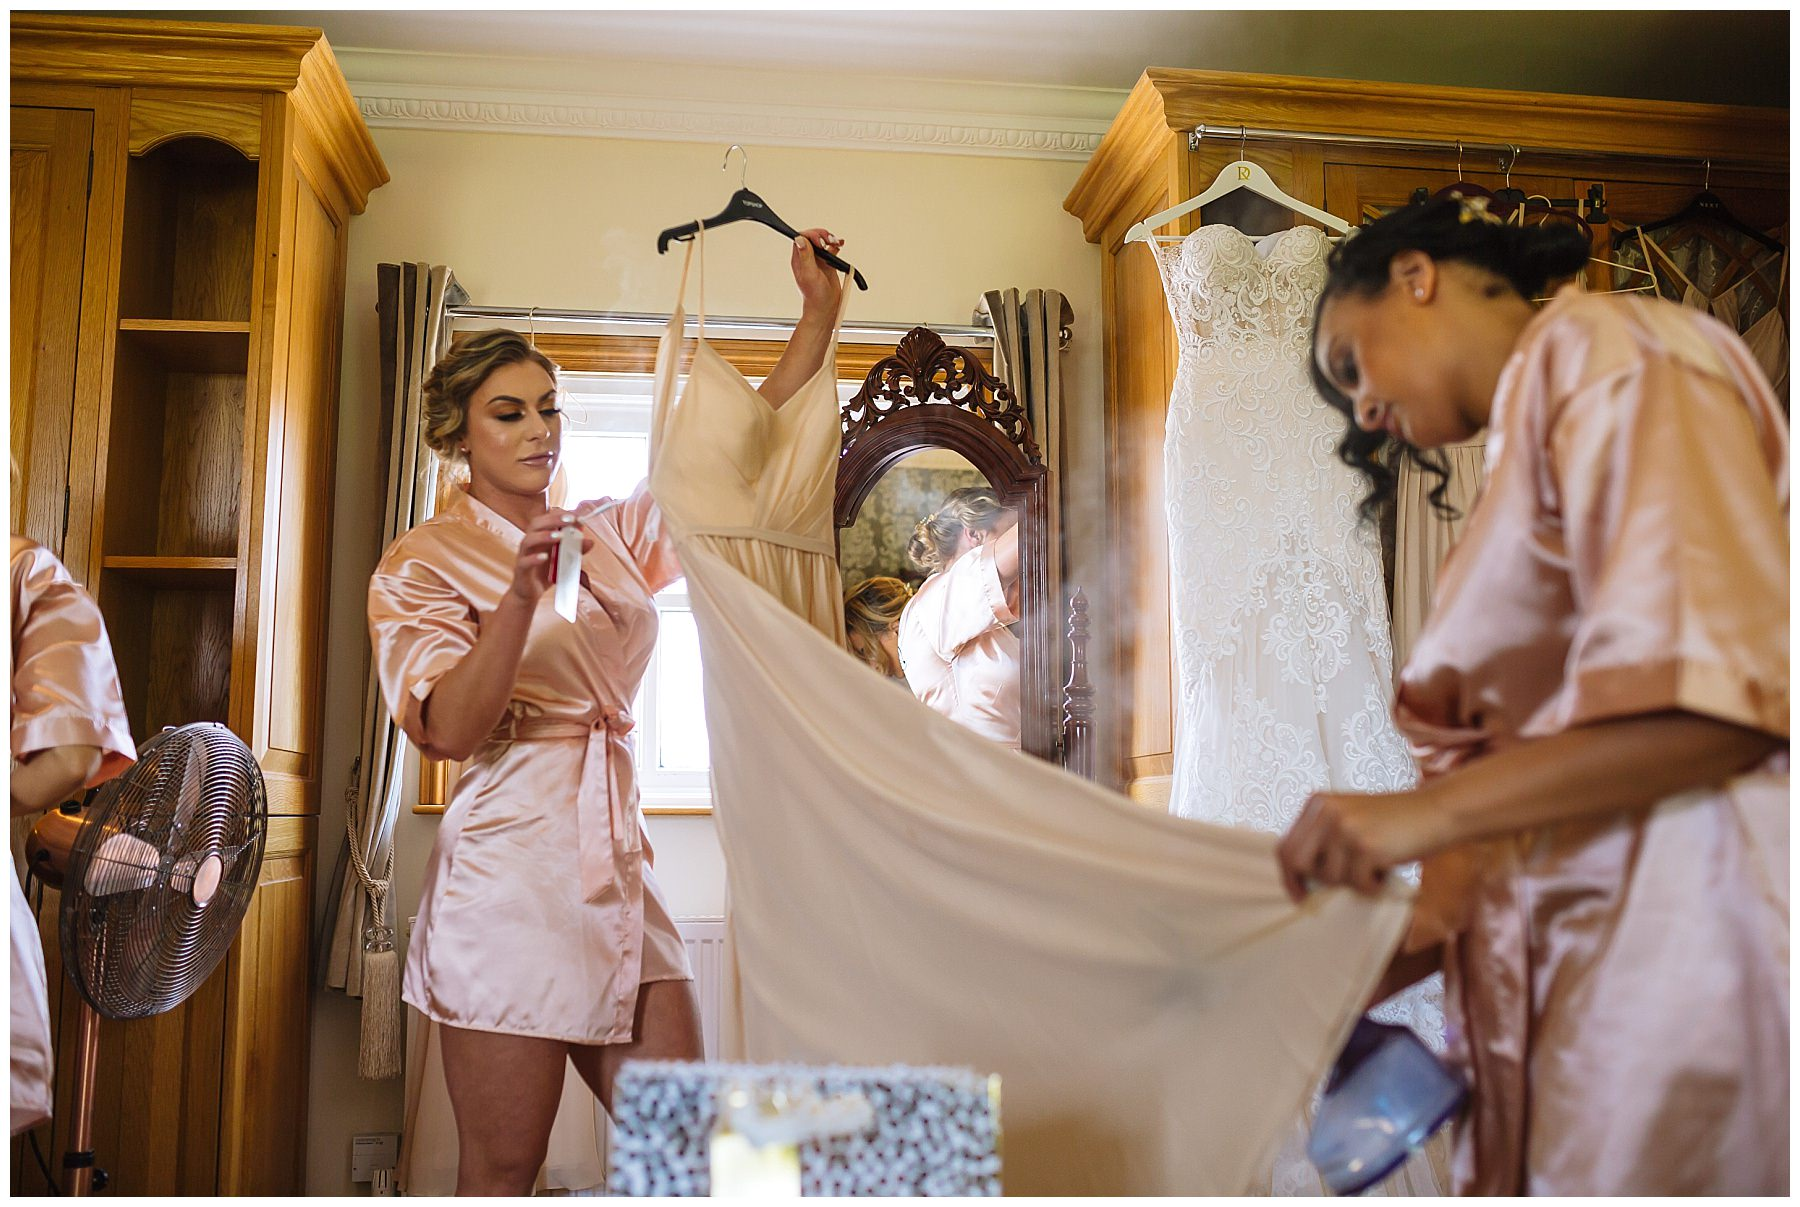 Brides steam dresses during bridal prep